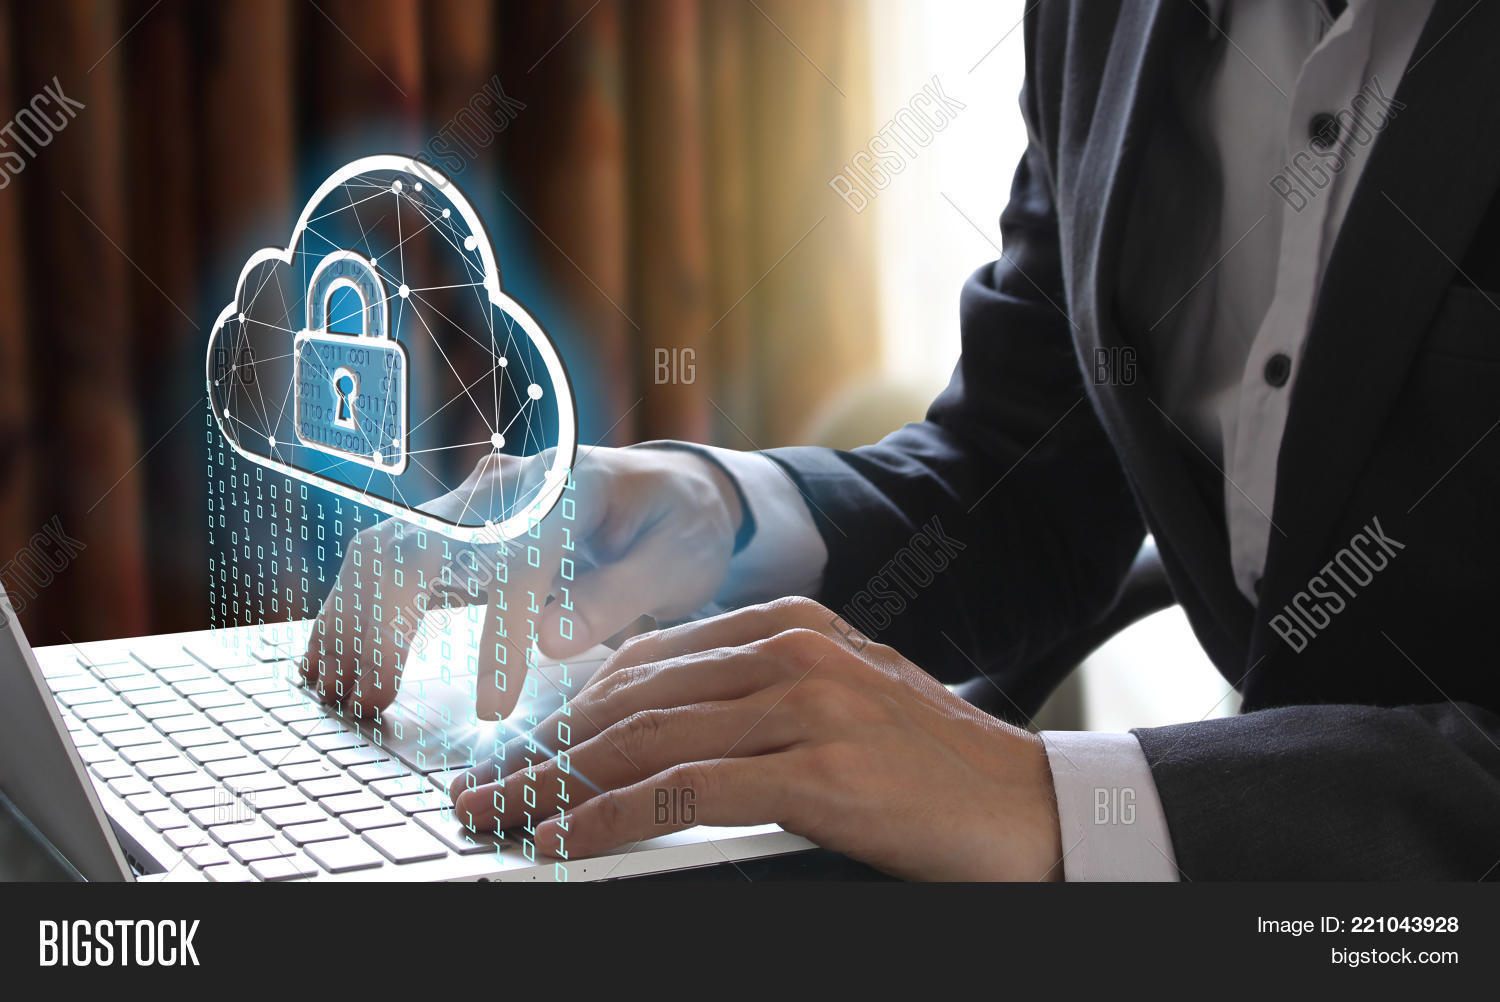 Businessman use Laptop with interface of padlock and cloud computing technology, Cyber Security Data Protection Business Technology Privacy concept, Internet Concept of global business.